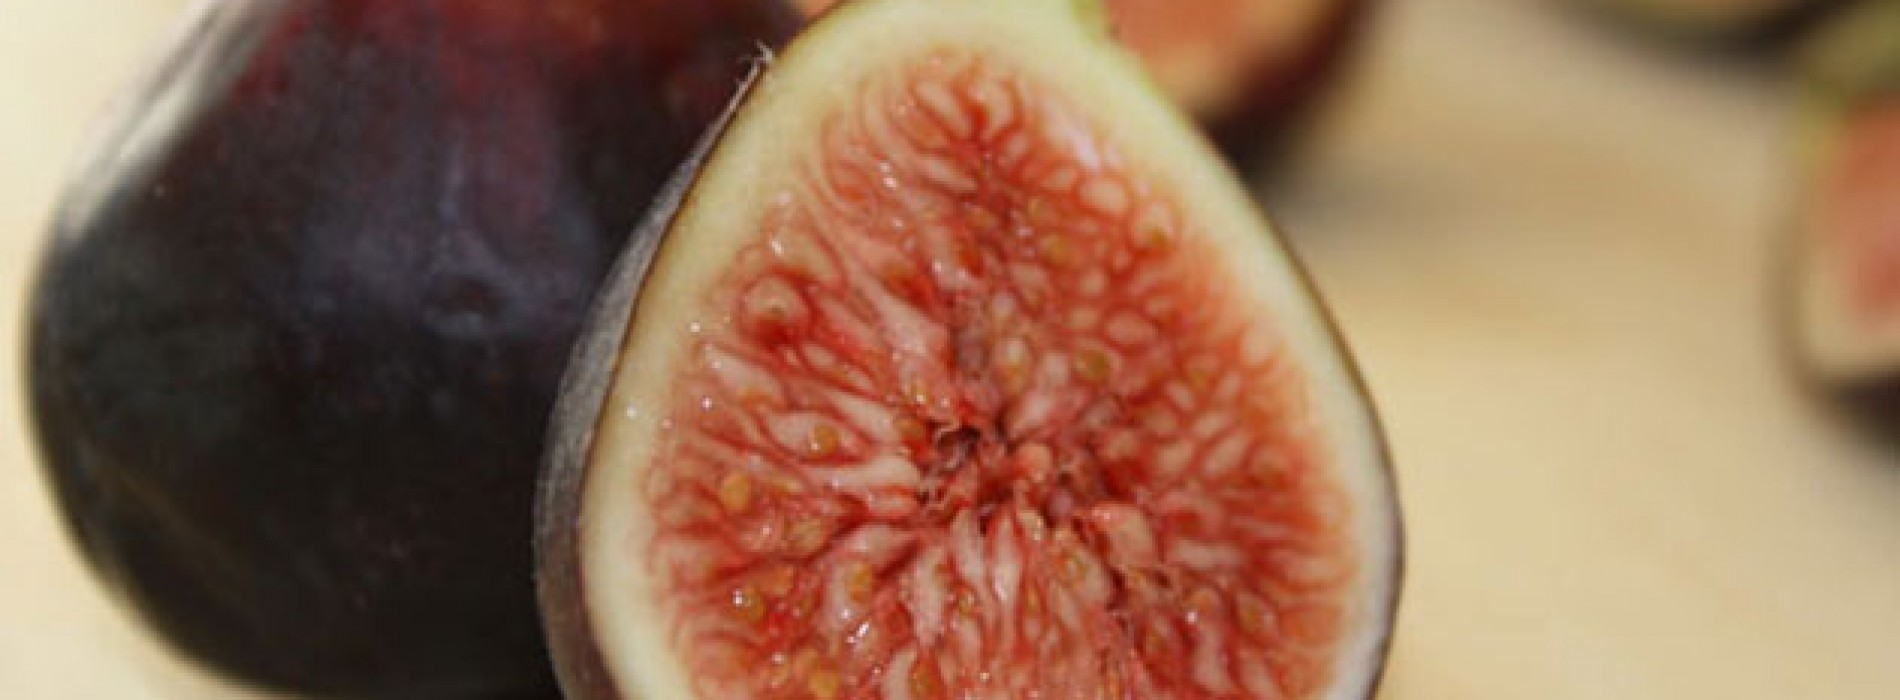 What's So Great About Figs?